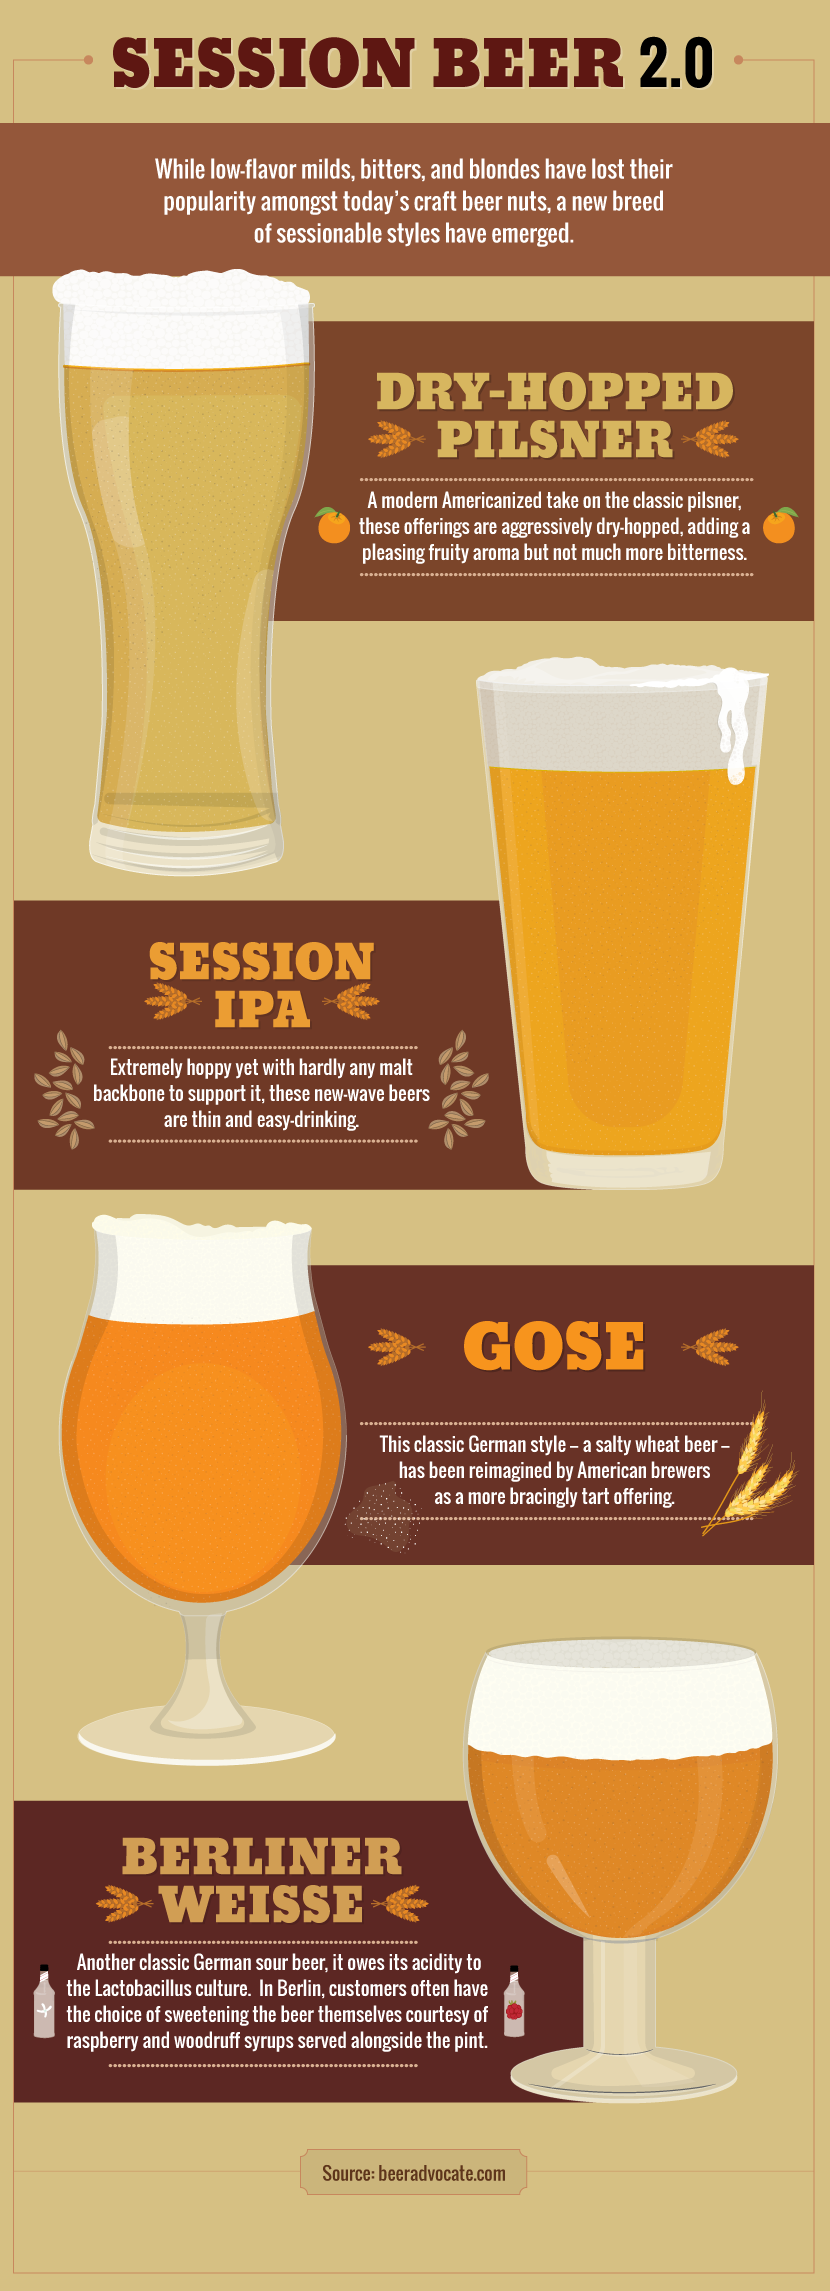 New Sessionable Beer Styles - What Makes Beer Sessionable?